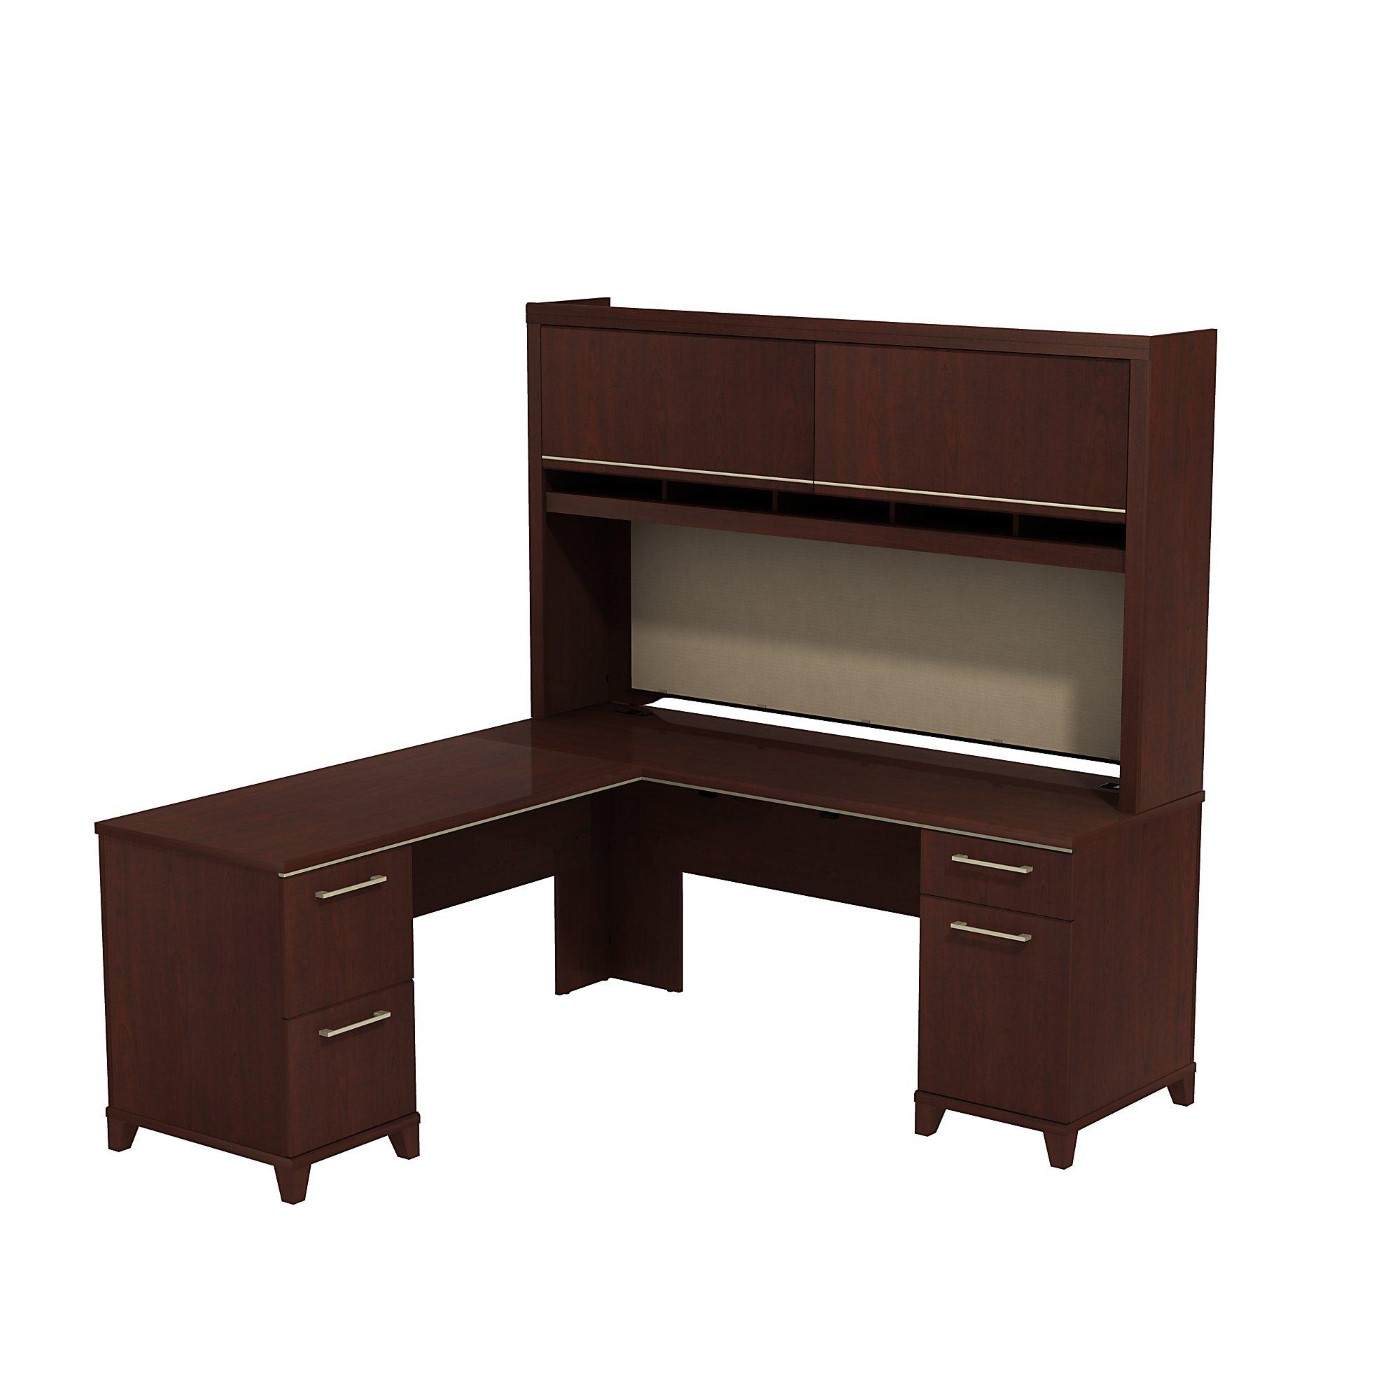 <font color=#c60><b>BUSH BUSINESS FURNITURE ENTERPRISE 72W X 72D L SHAPED DESK WITH HUTCH. FREE SHIPPING</font></b>